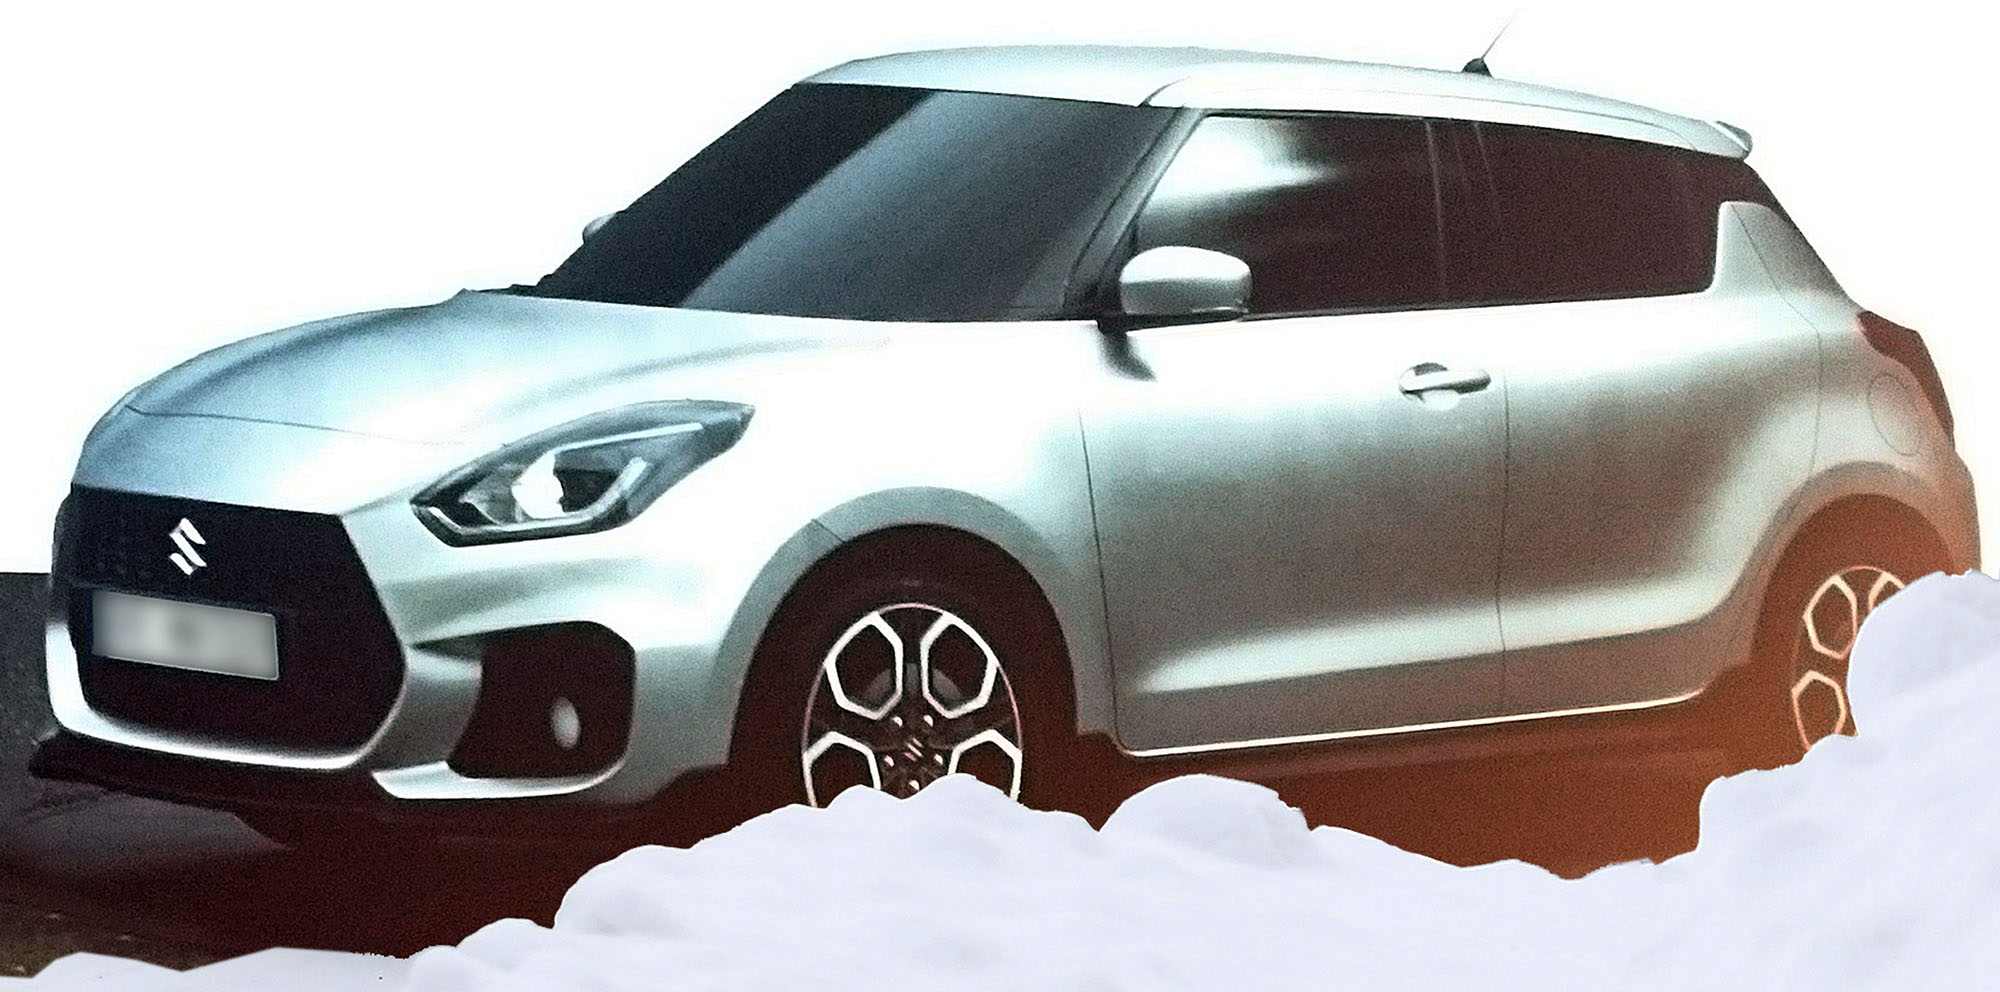 suzuki-swift-sport-leak-hero.jpg